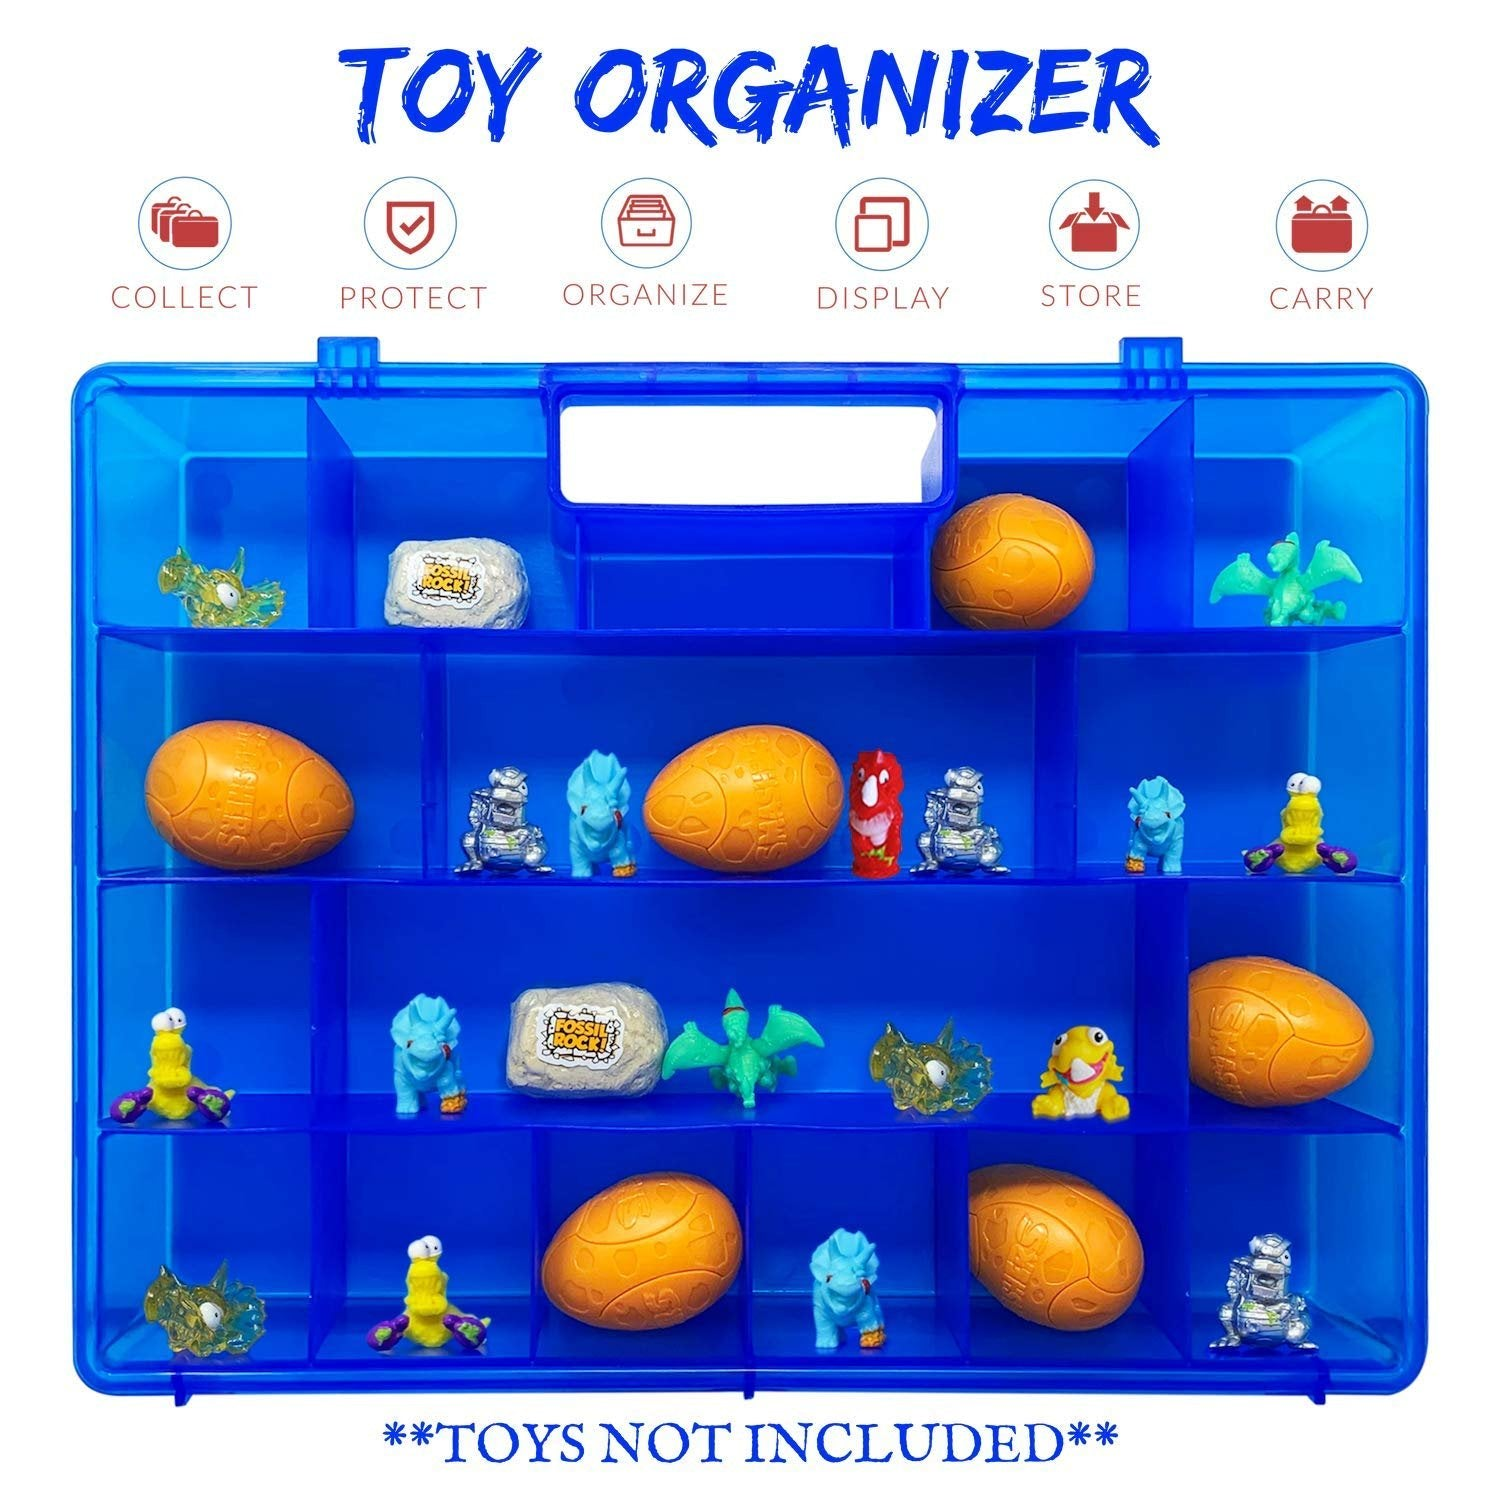 Life Made Better All-in-One Fun-Blue Toy Organizer, Storage & Travel Case for Toys, Compatible with Smashers Dino Egg Figures, Accessory Made by LMB